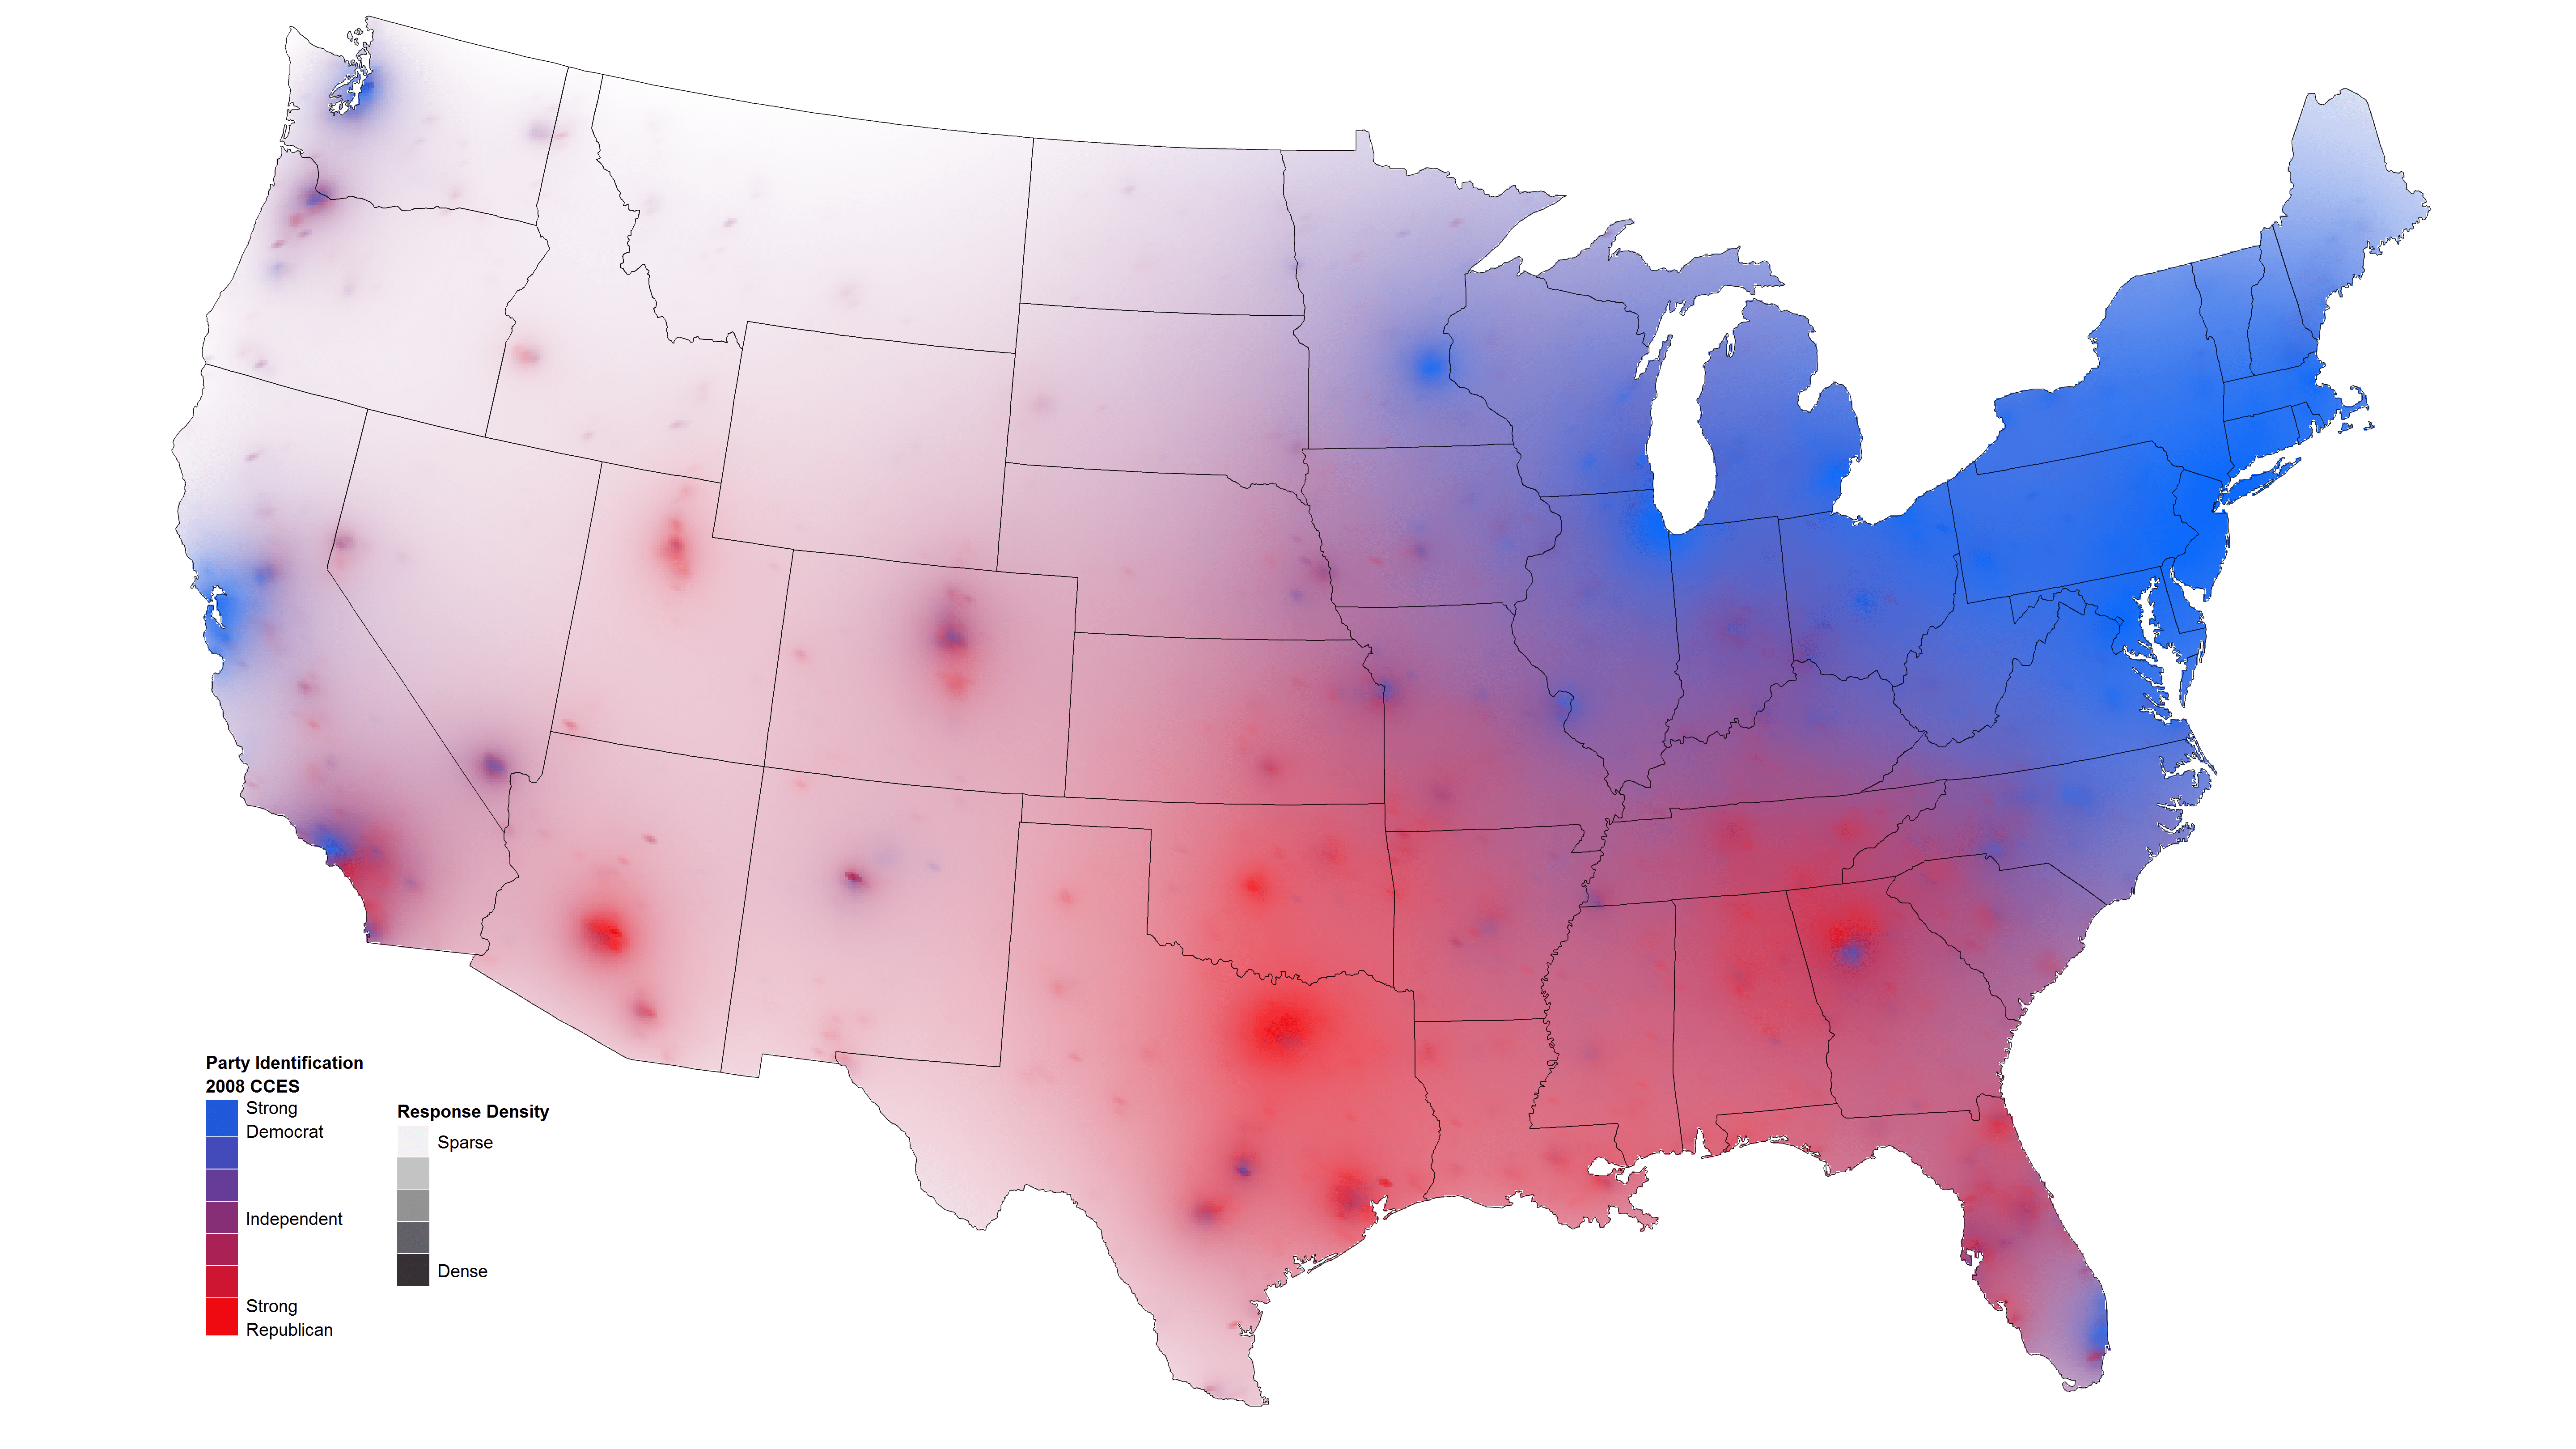 Isarithmic Maps Of Public Opinion Data